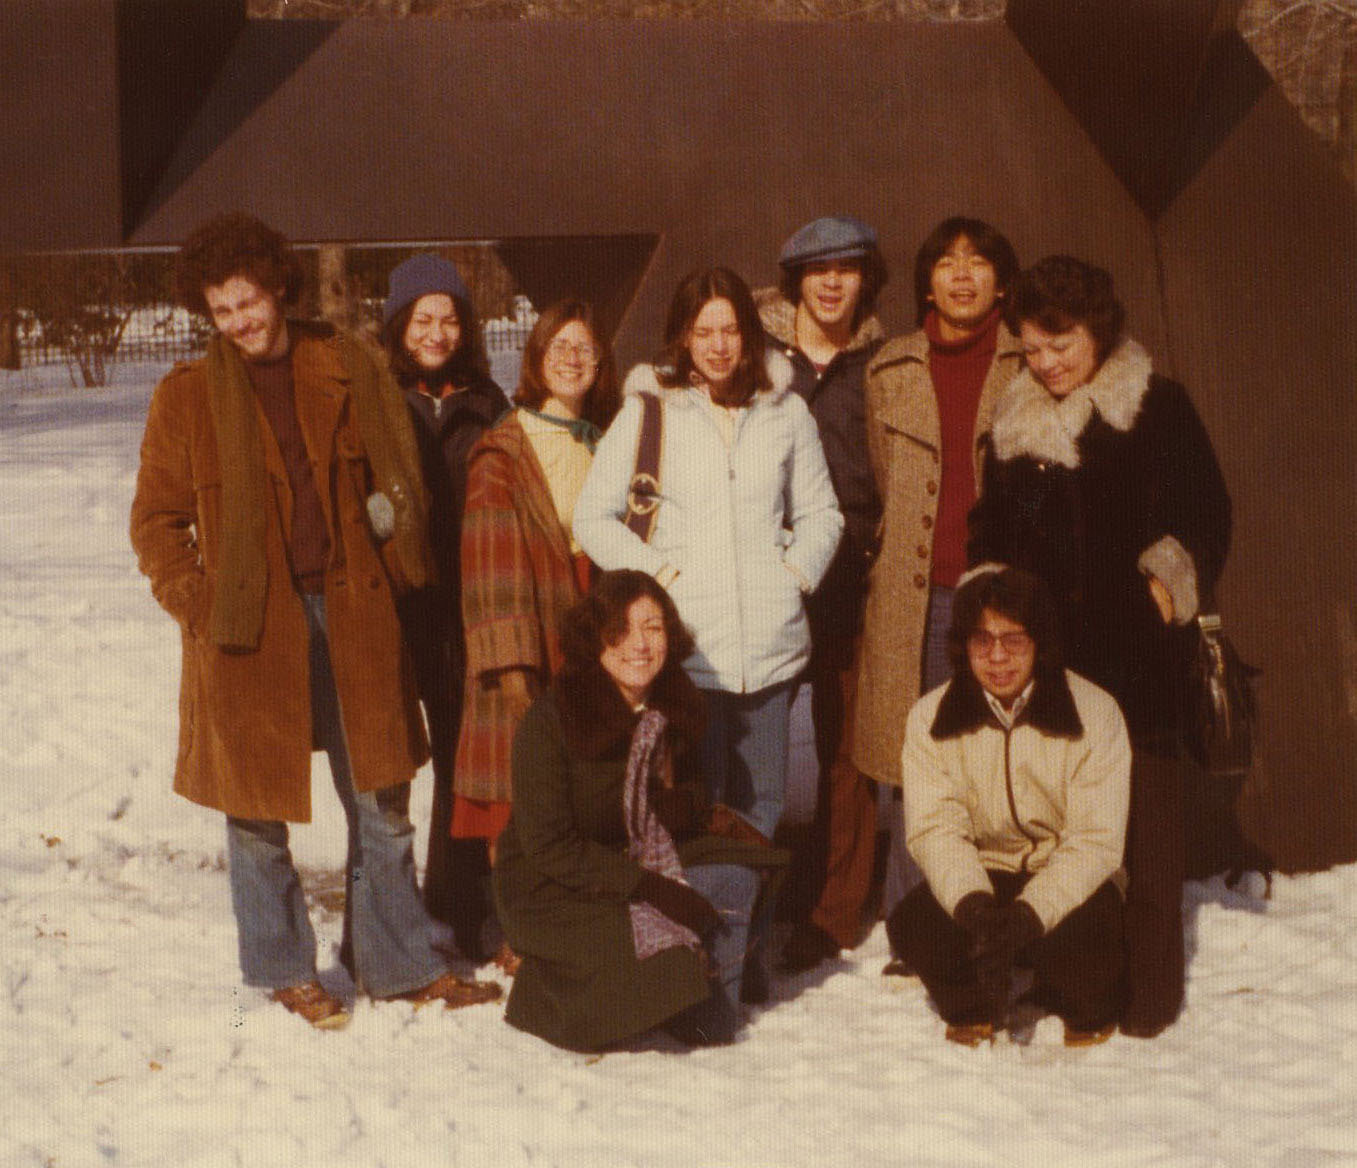 Sotomayor (second from left) poses with her husband, Kevin Noonan (to her left), and friends at Princeton University. The future Supreme Court justice graduated from Princeton in 1976 with a bachelor's degree in history.